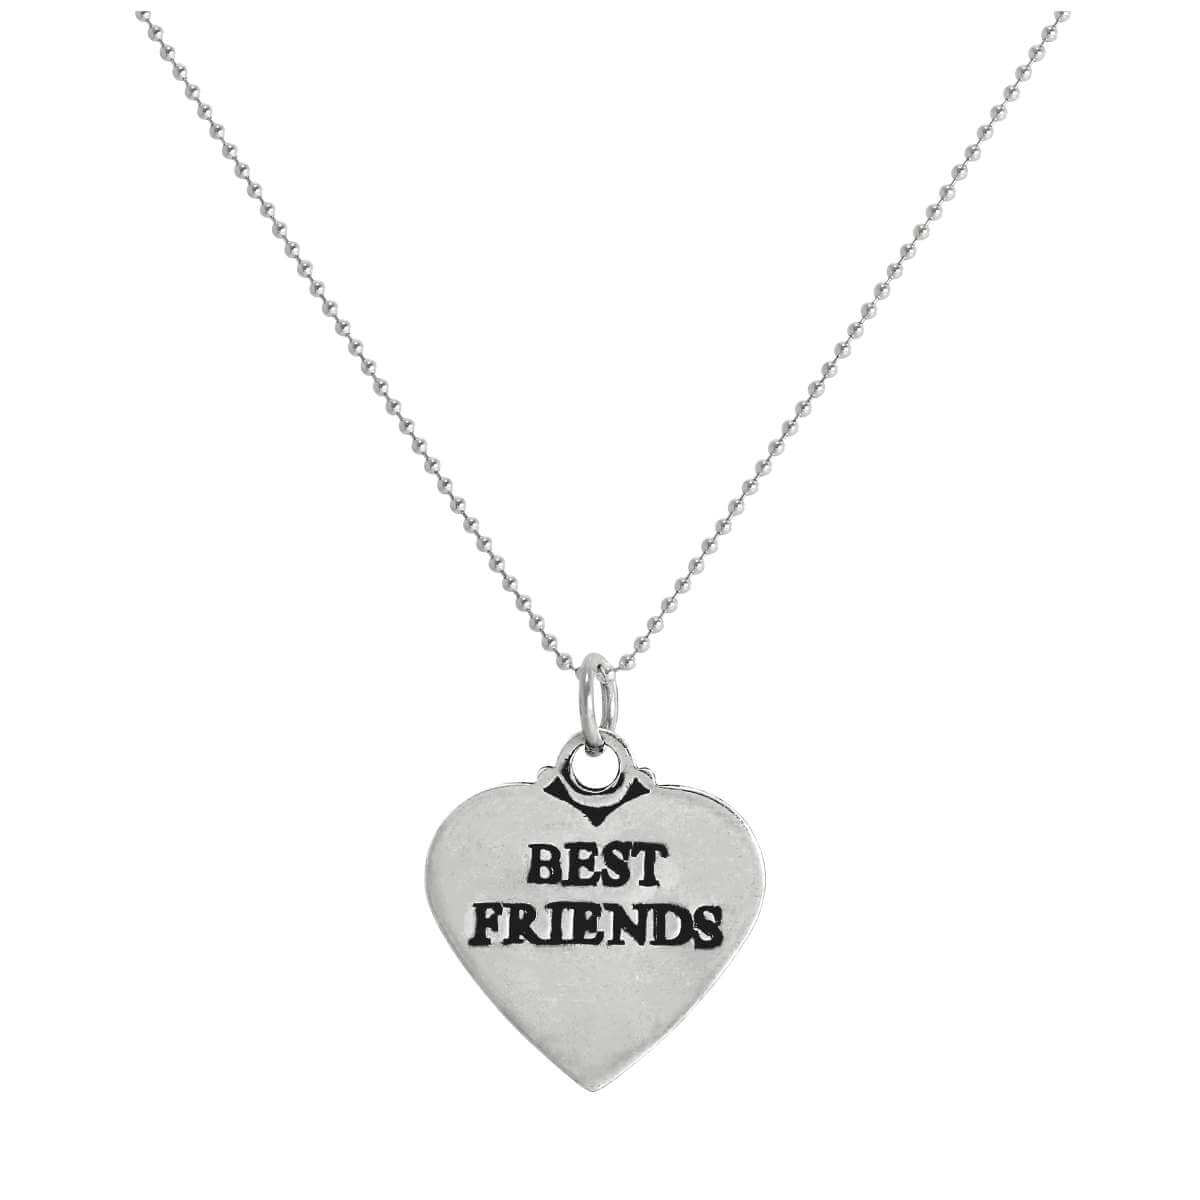 Sterling Silver Best Friends Heart Pendant Necklace 14 - 22 Inches